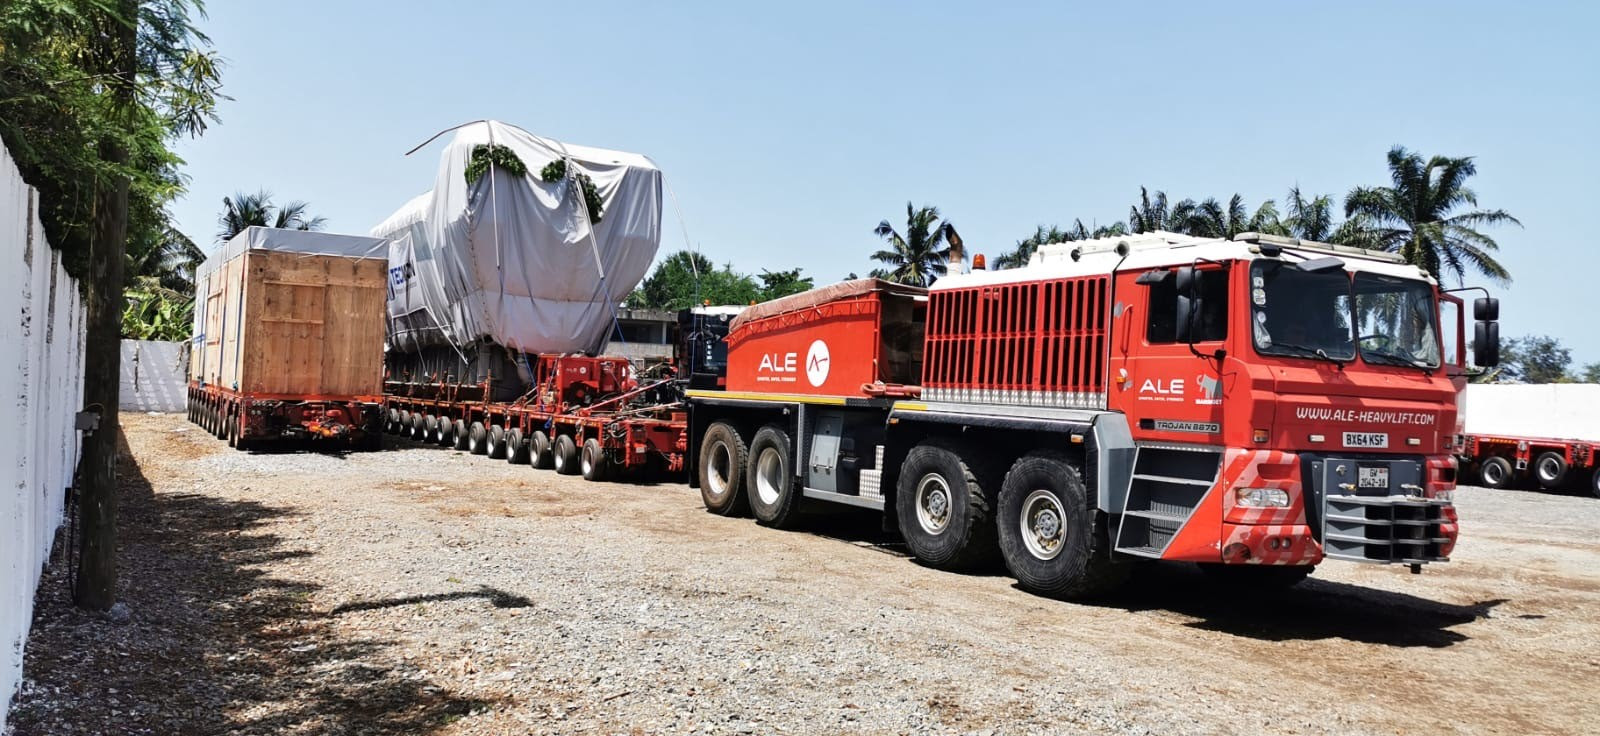 Equipment arrived at the site